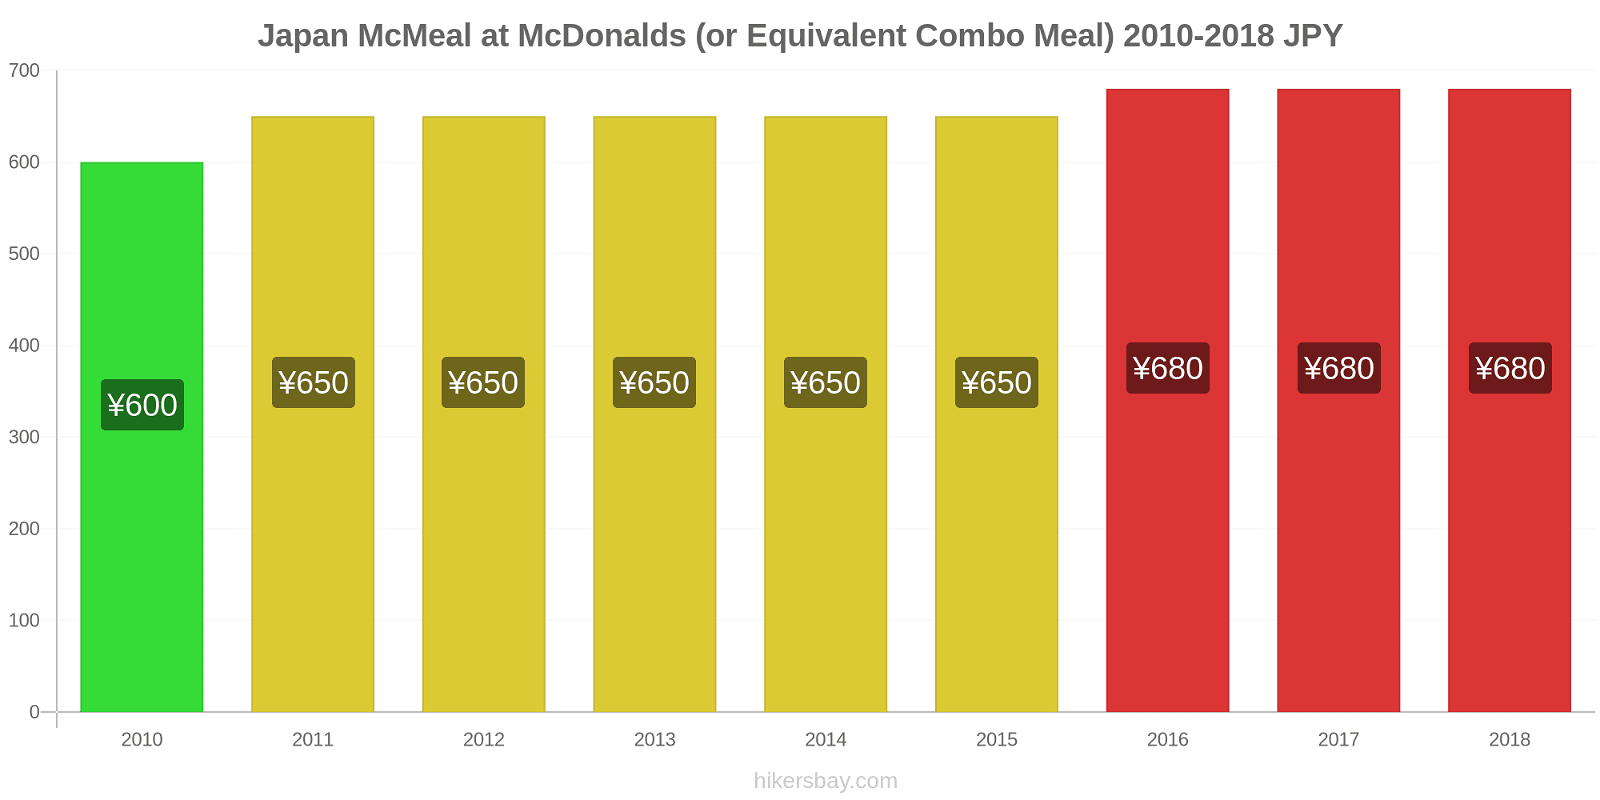 Japan price changes McMeal at McDonalds (or Equivalent Combo Meal) hikersbay.com